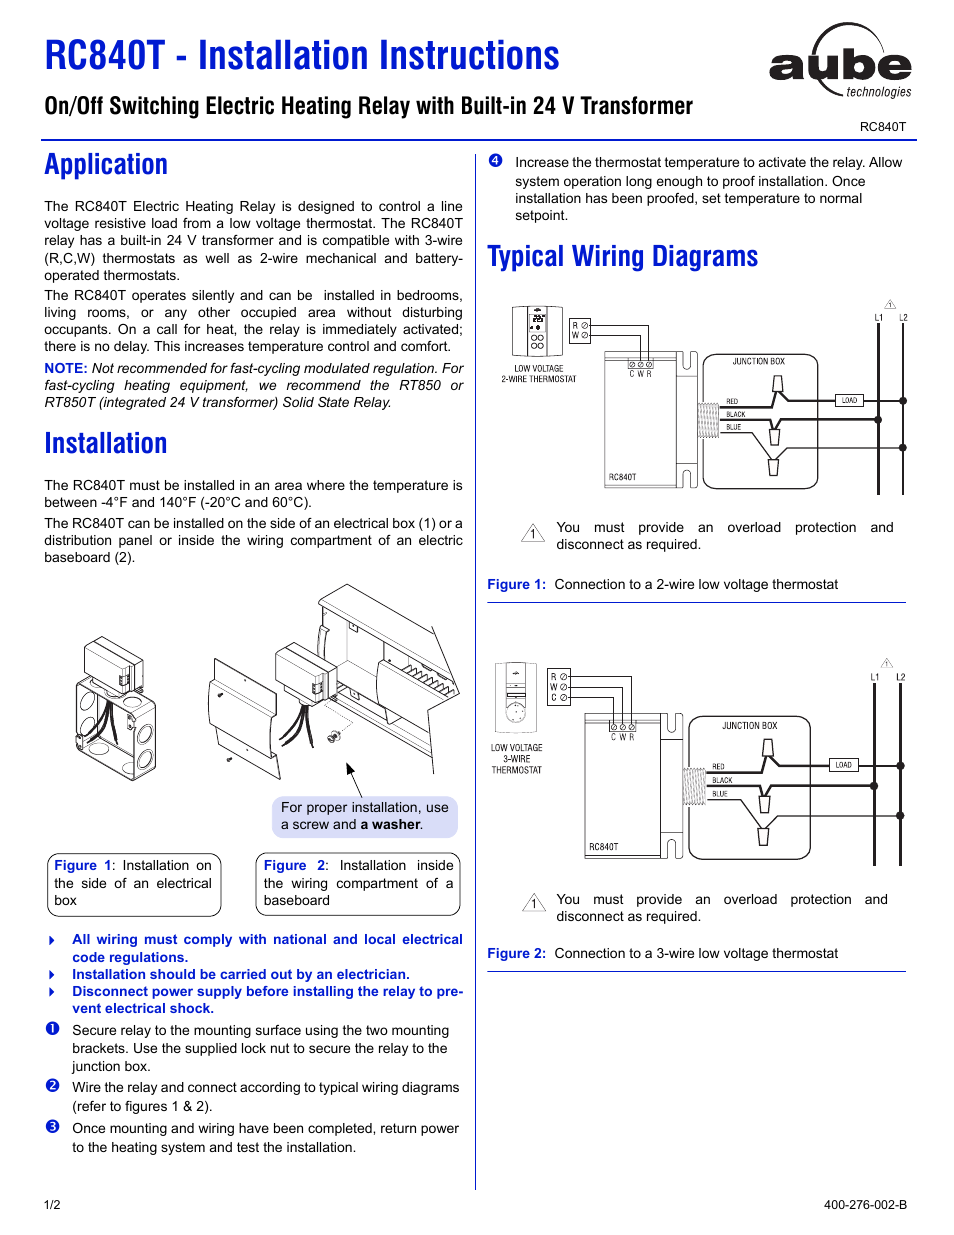 Ouellet Rc840 User Manual 2 Pages With 3 Wire Thermostat Wiring On Typical Diagram